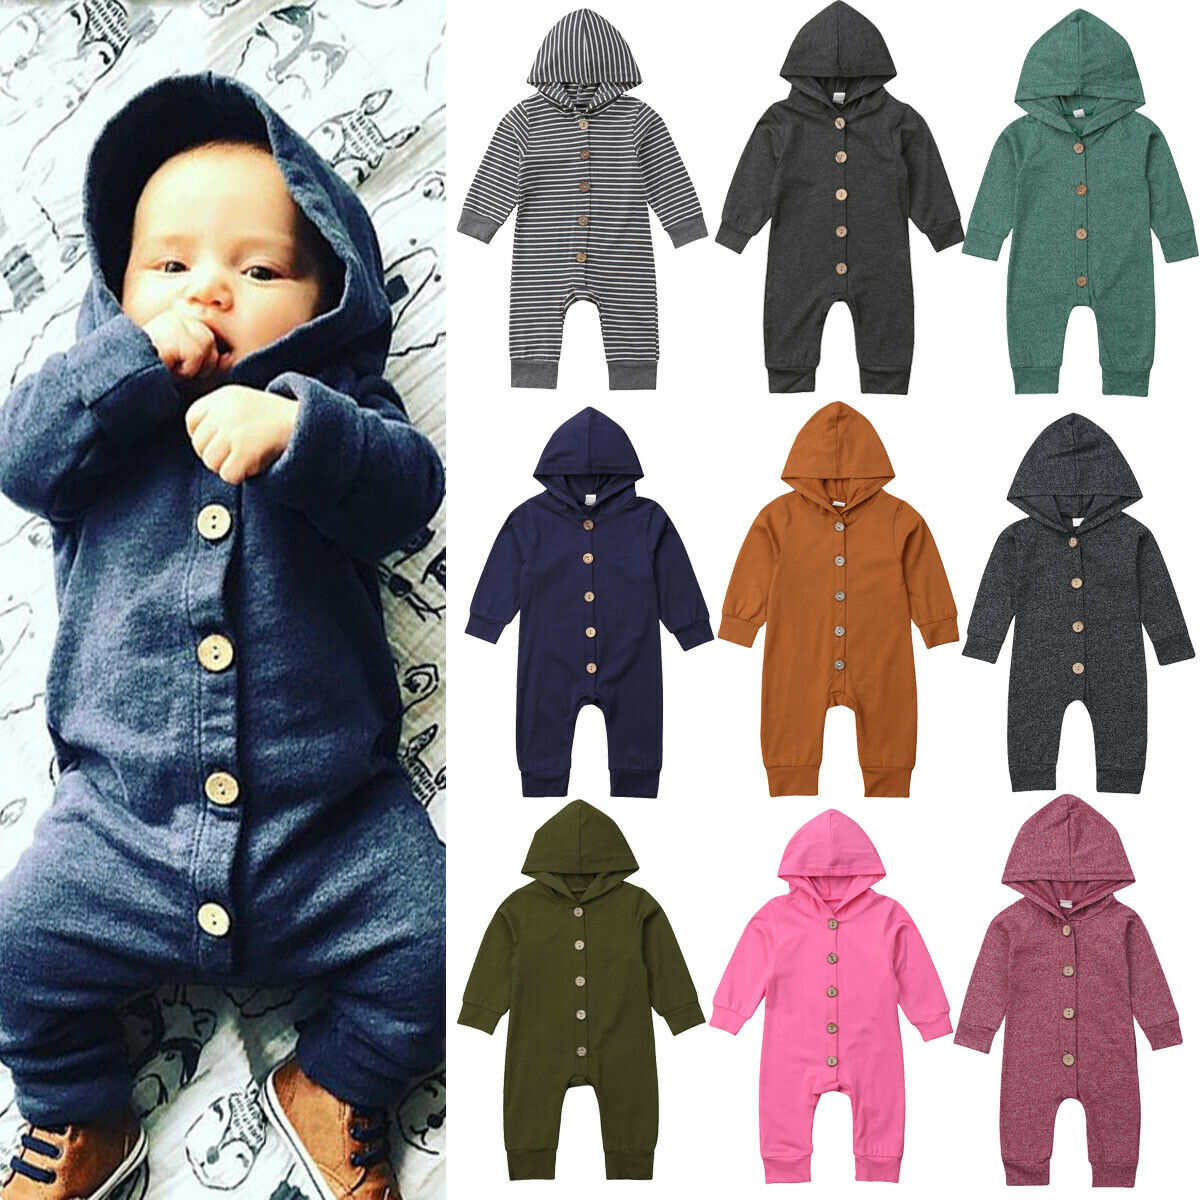 2019 Newest Style Cotton Baby Kids Boy Girl Spring Autumn Long Sleeve Infant Hooded Romper Jumpsuit Clothes Outfits 0-24months Pure And Mild Flavor